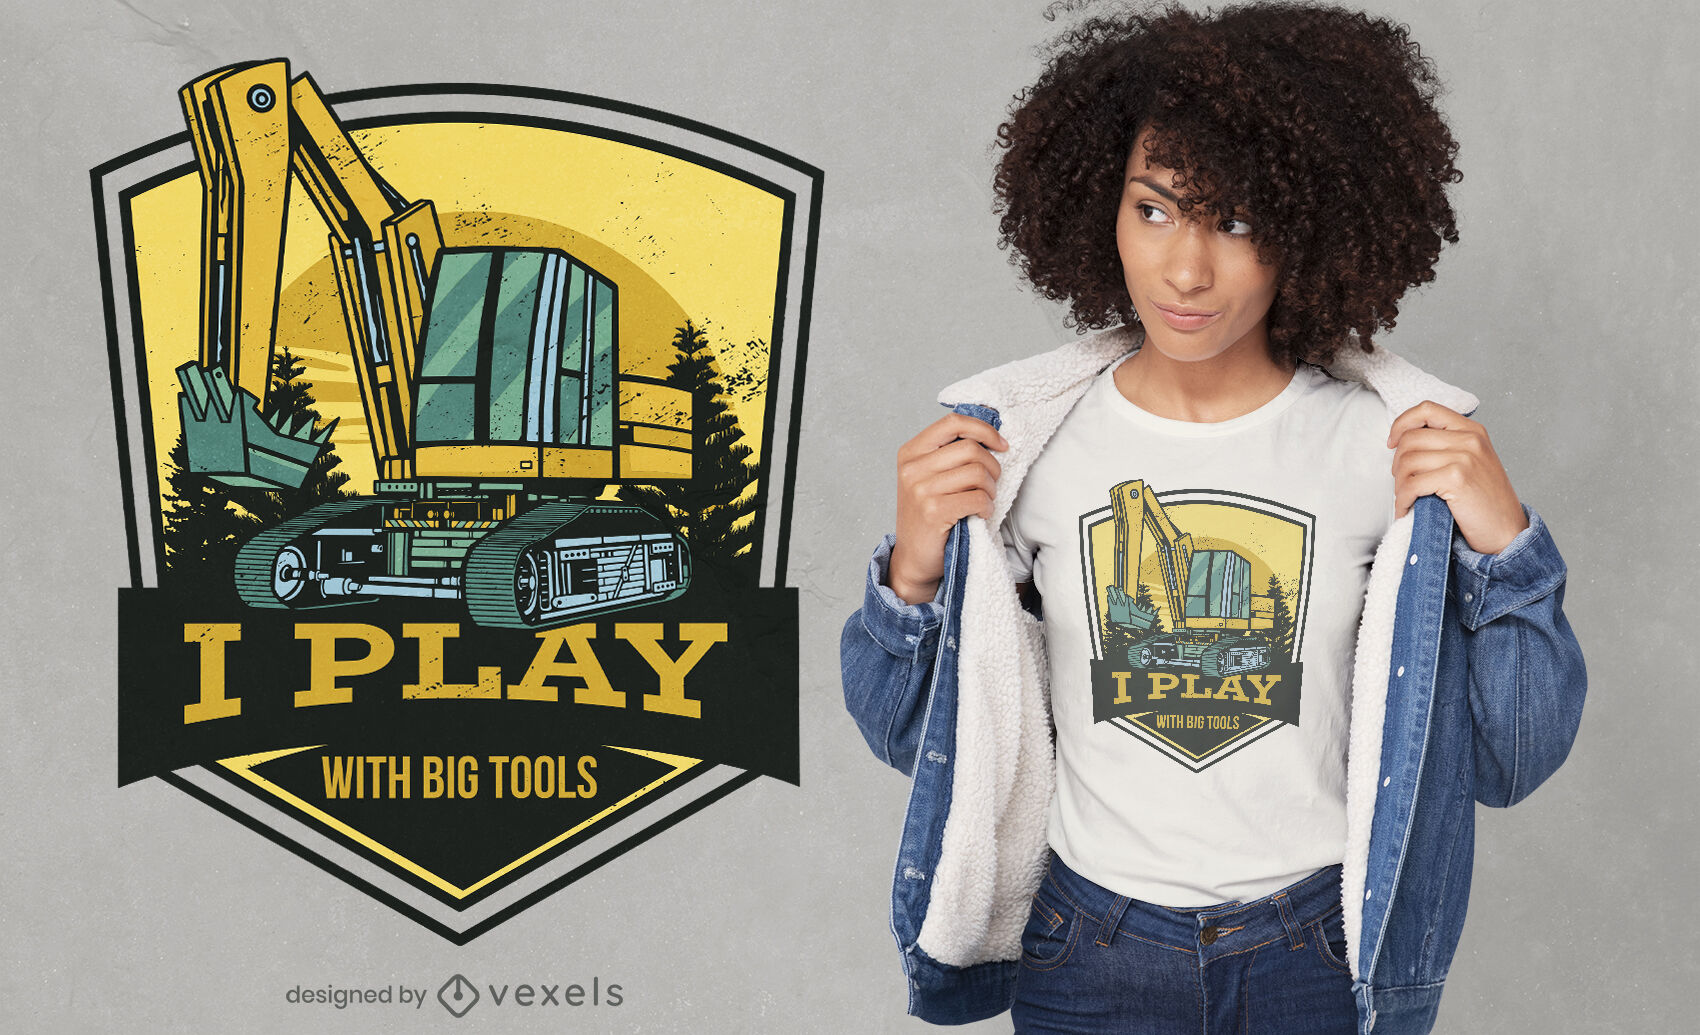 Play with big tools t-shirt design